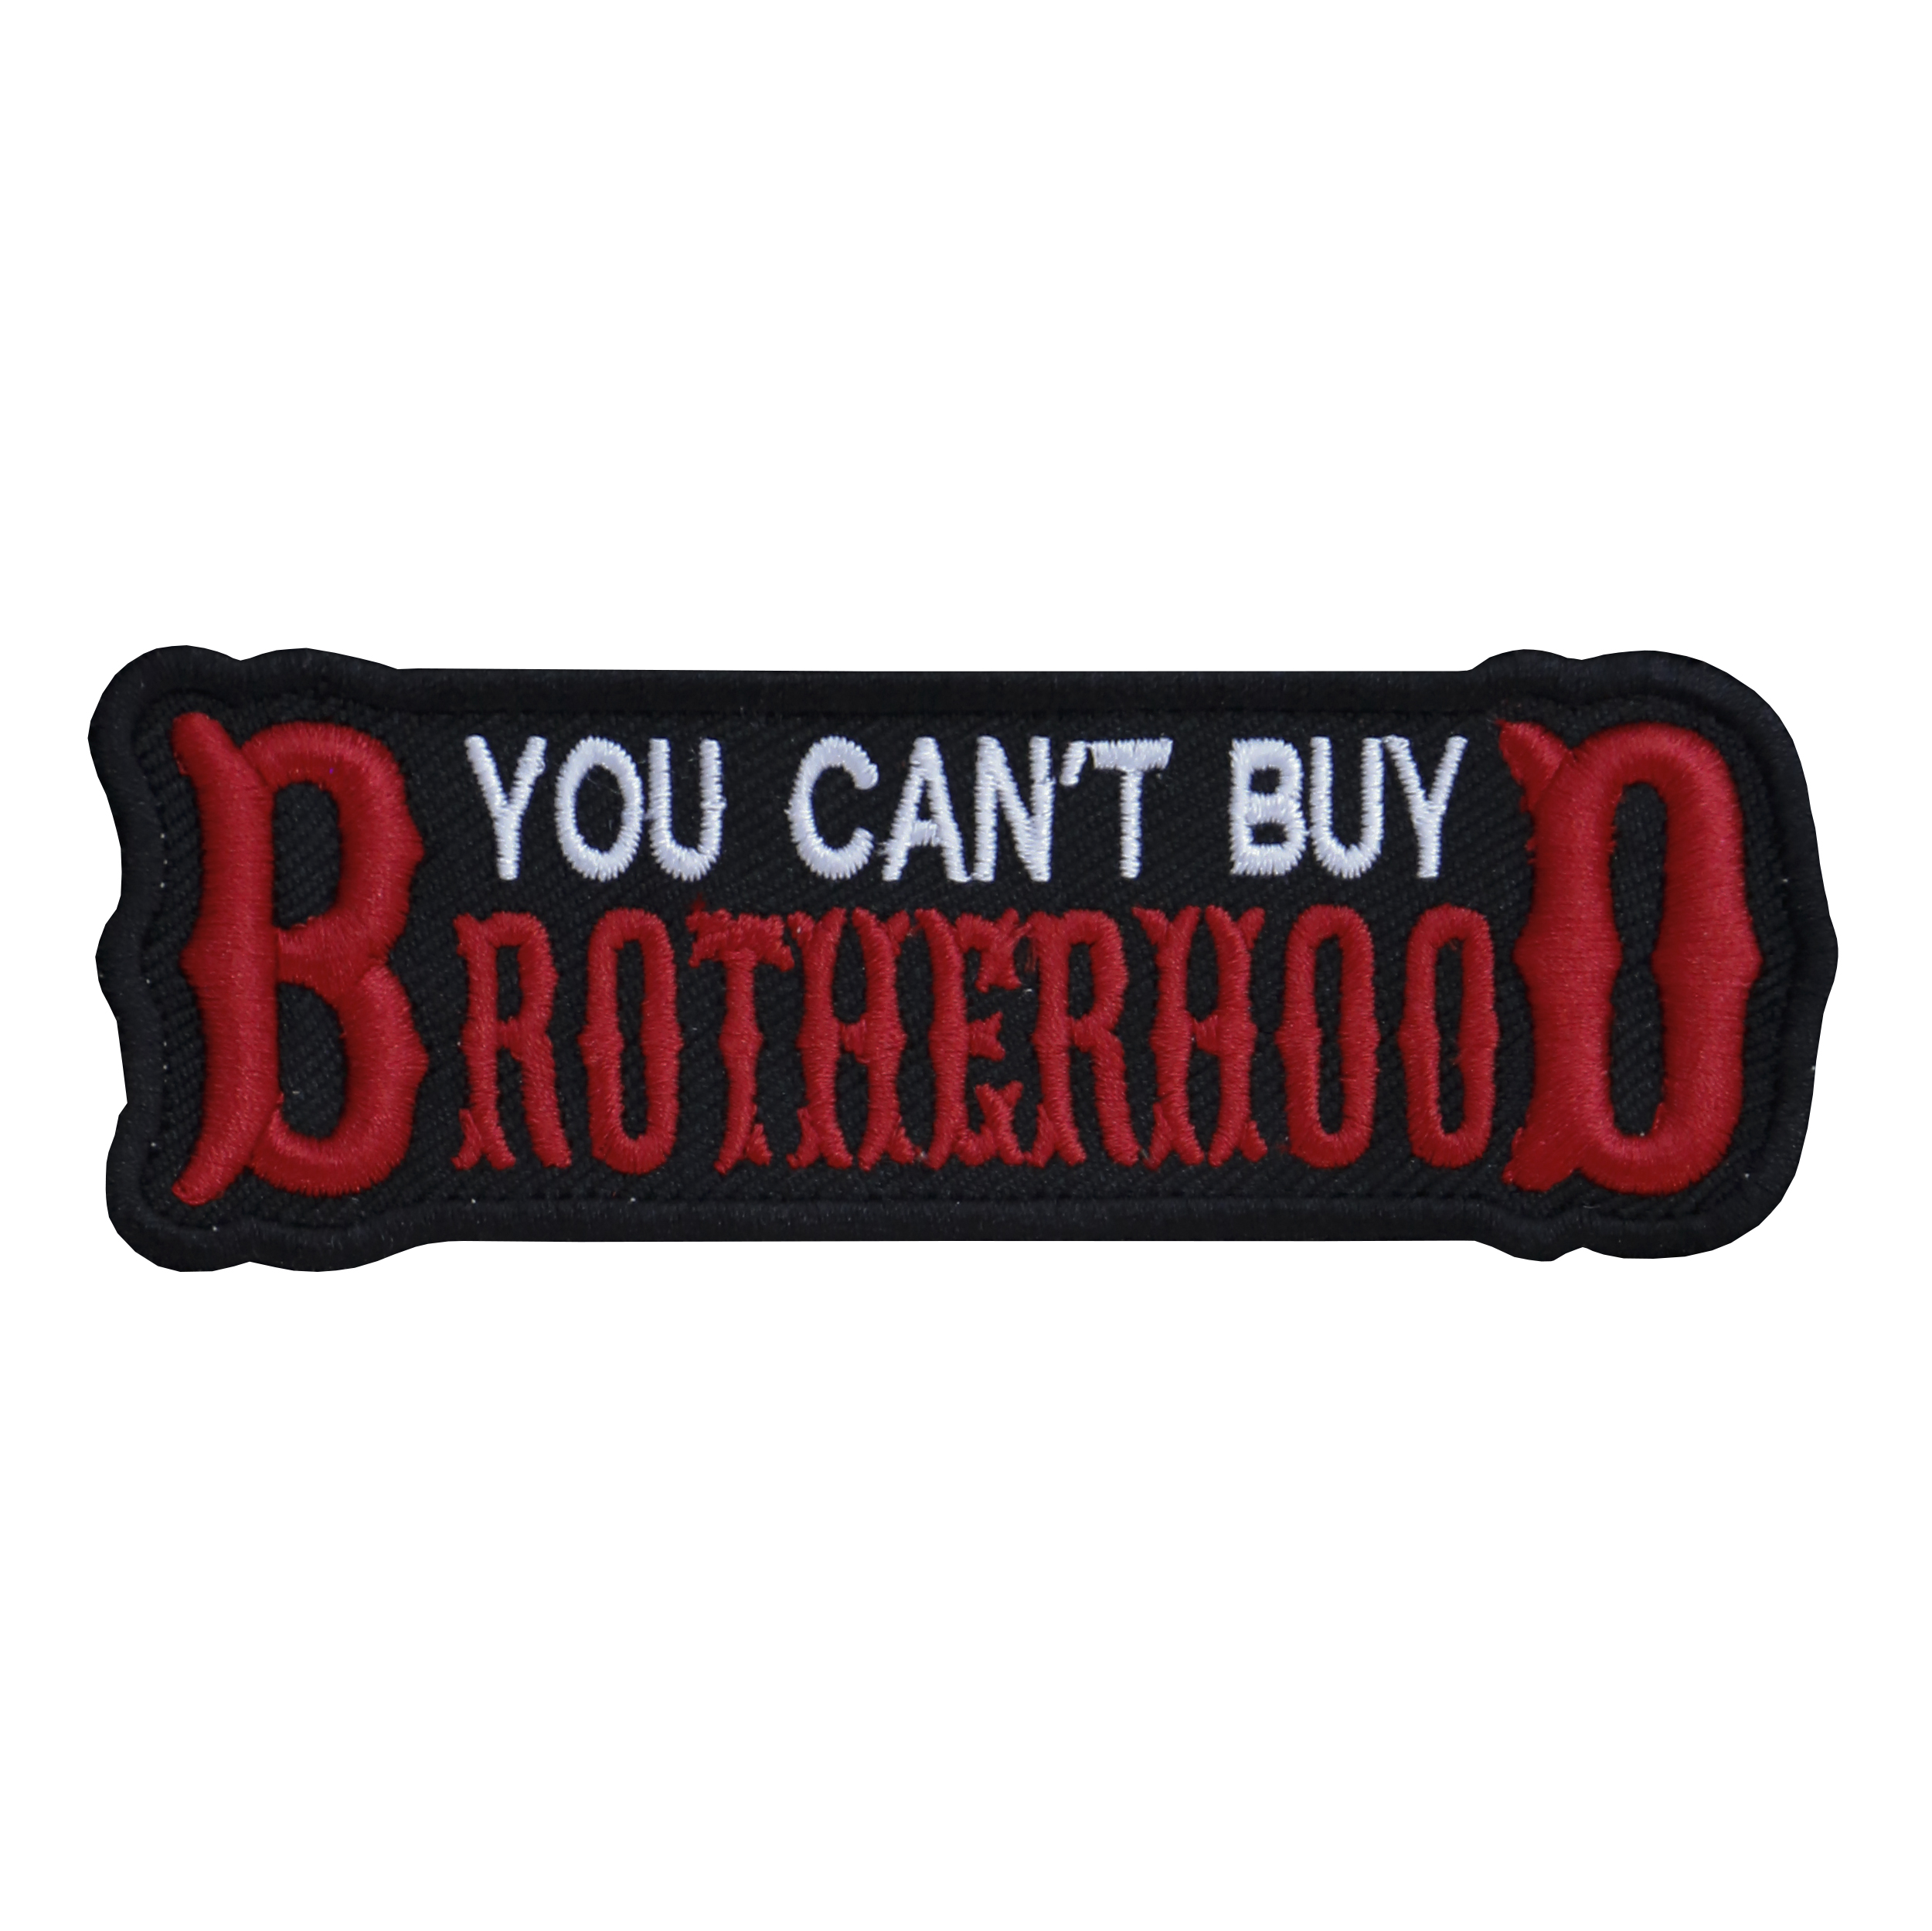 YOU CAN'T BUY BROTHERHOOD EMBROIDERED BIKER PATCH